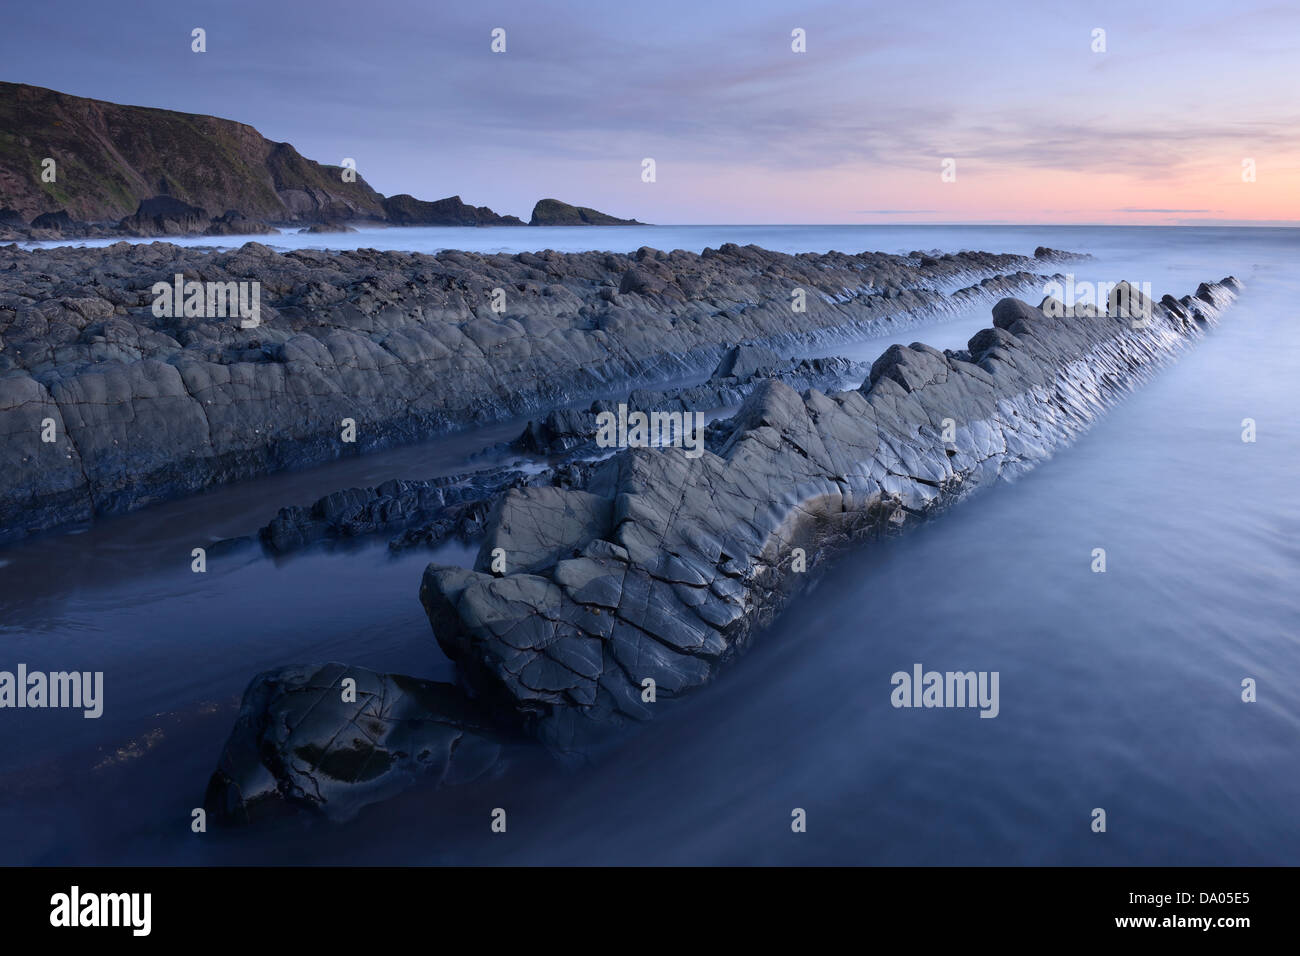 A section of rock shaped like a prehistoric crocodile on Welcombe Mouth Beach, North Devon, UK. Stock Photo